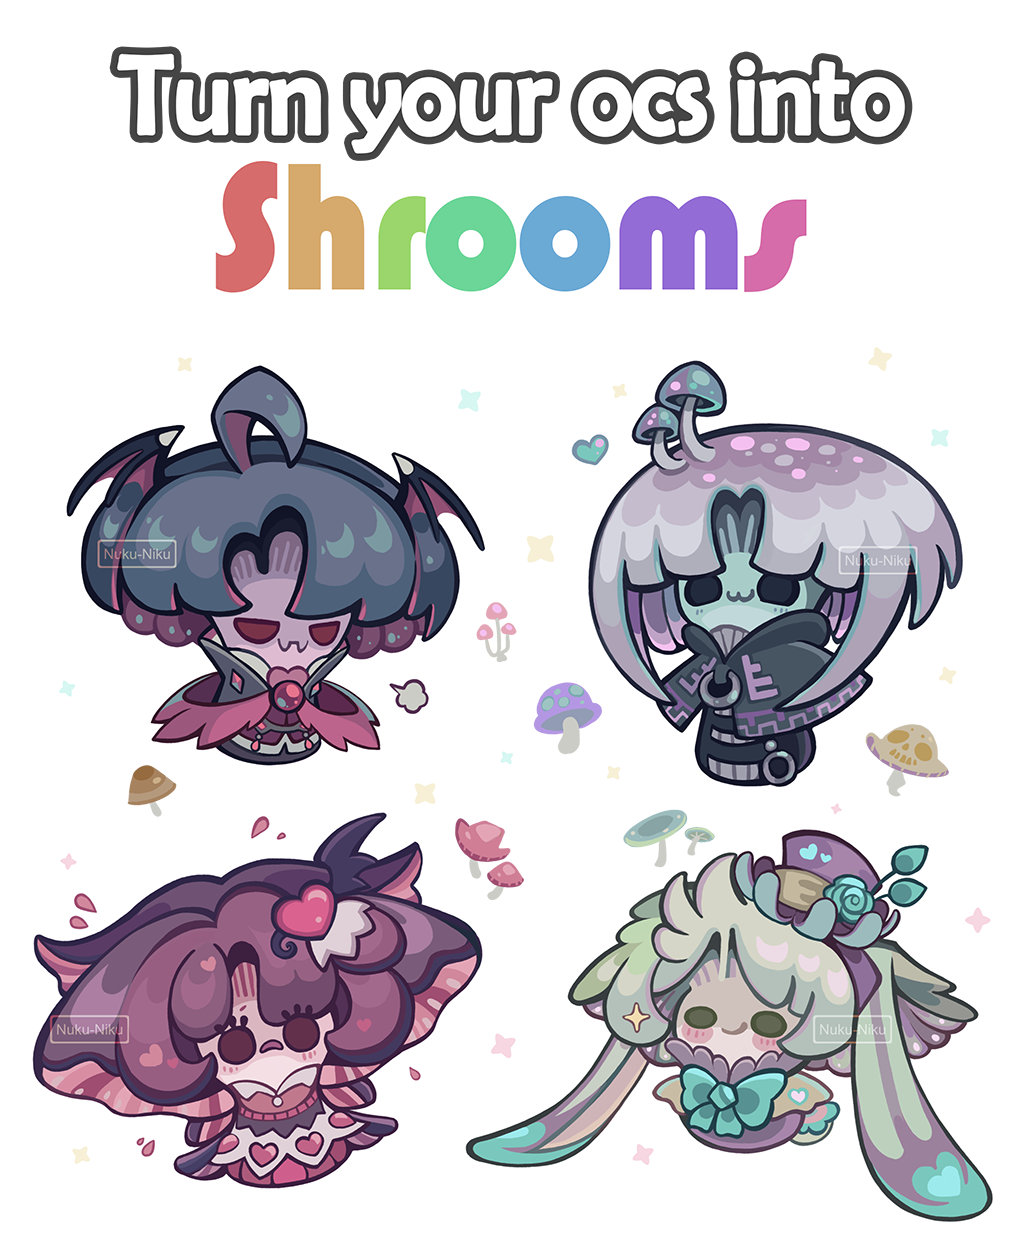 Turn your OCs into shrooms